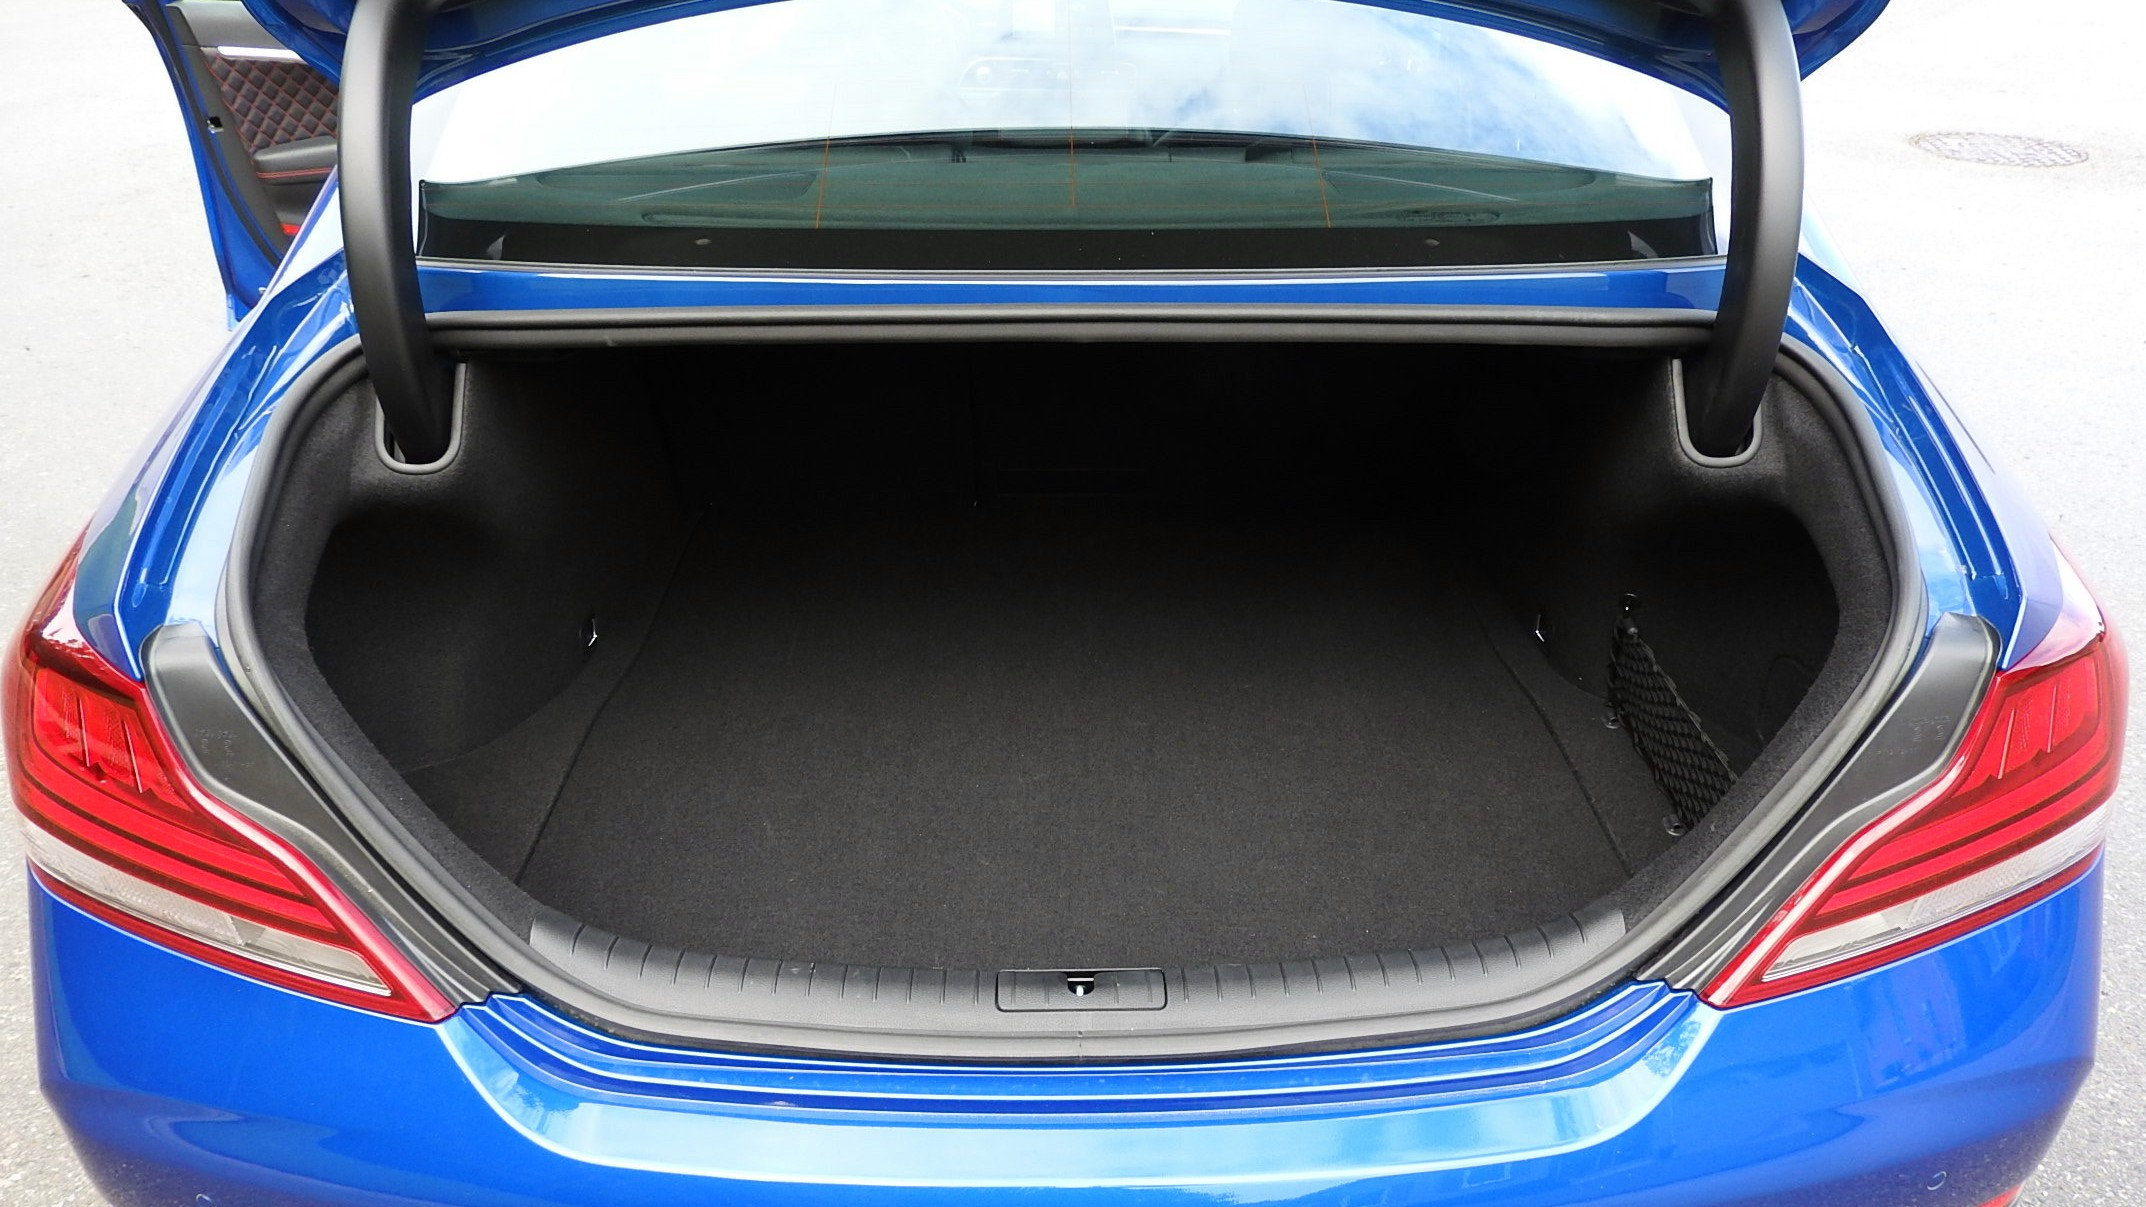 Genesis g70 cargo capacity trunk boot